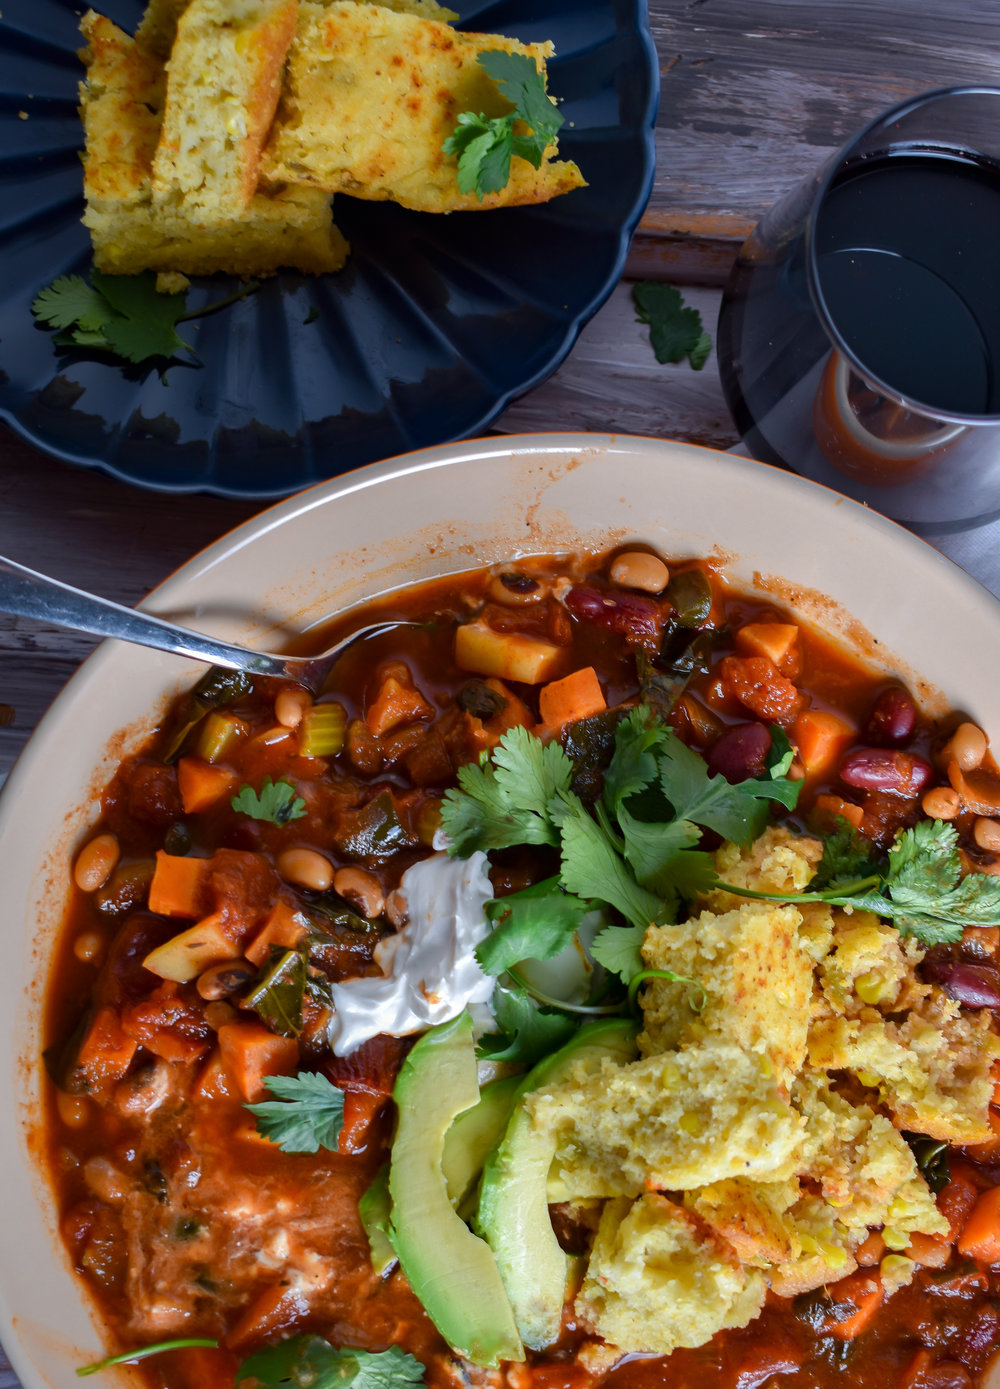 7. When the chili is done, serve in a bowl with cornbread. I like to add some vegan sour cream, avocado, cilantro, and cornbread with mine!